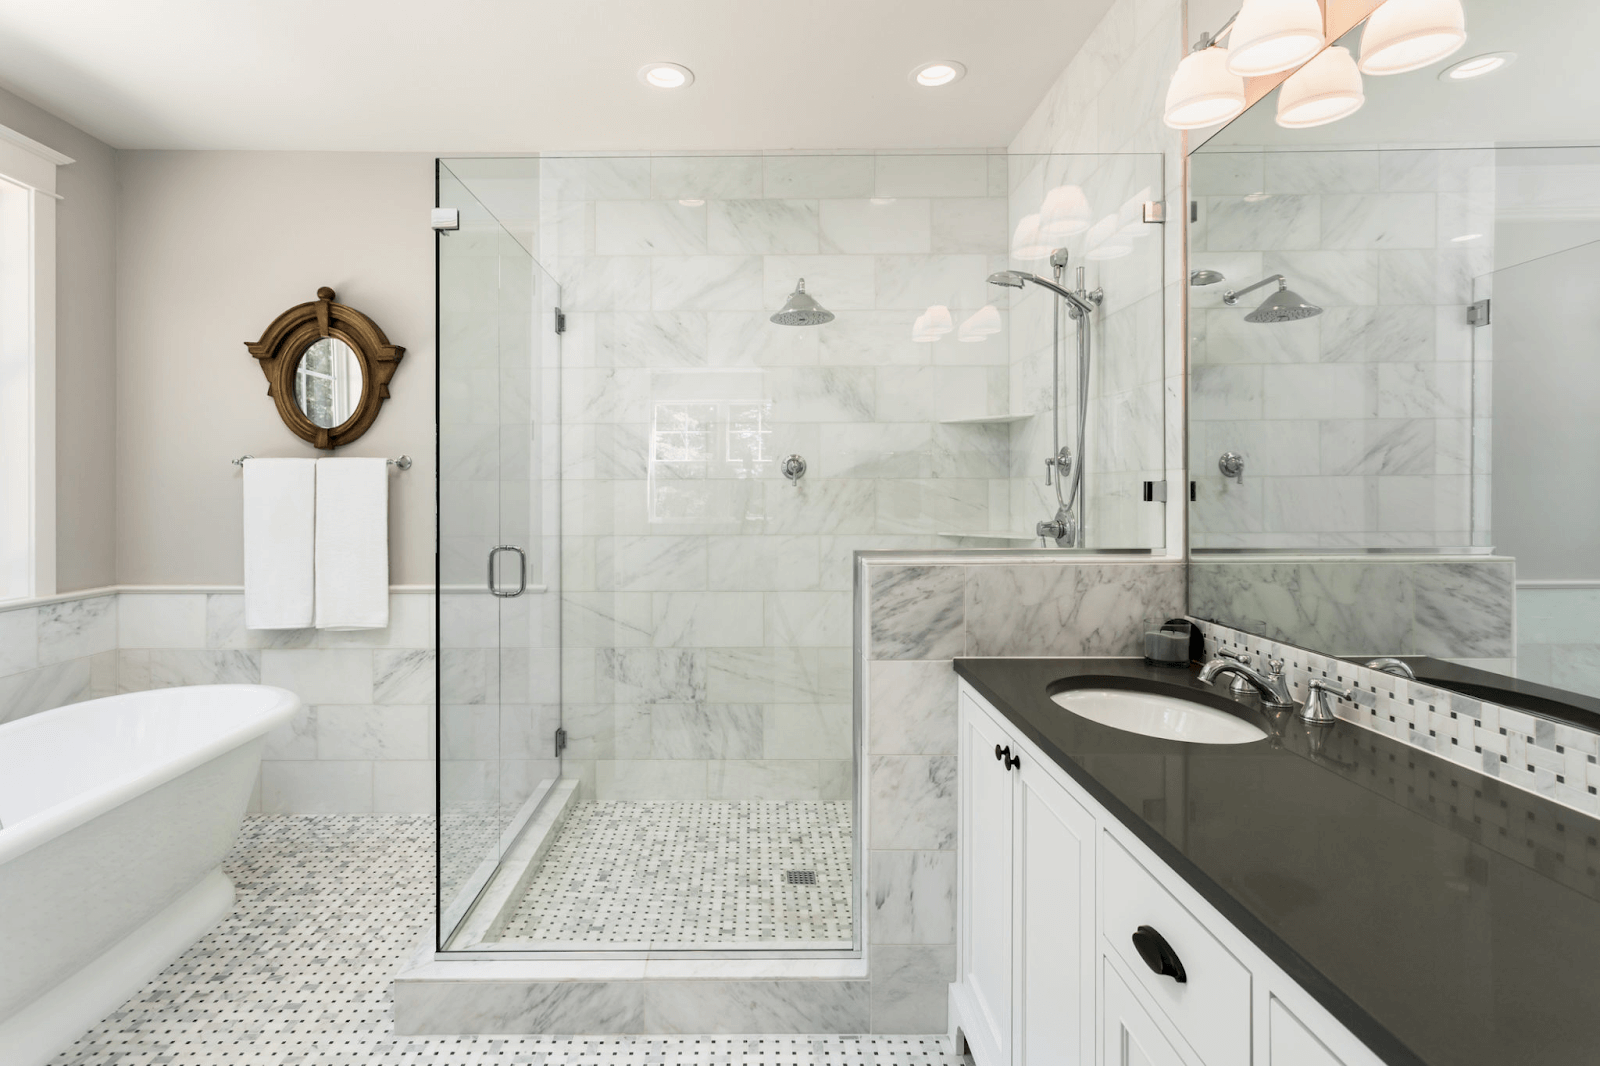 Not Using Tiles Bathroom Ideas: 40 Free Shower Tile Ideas (Tips For Choosing Tile)